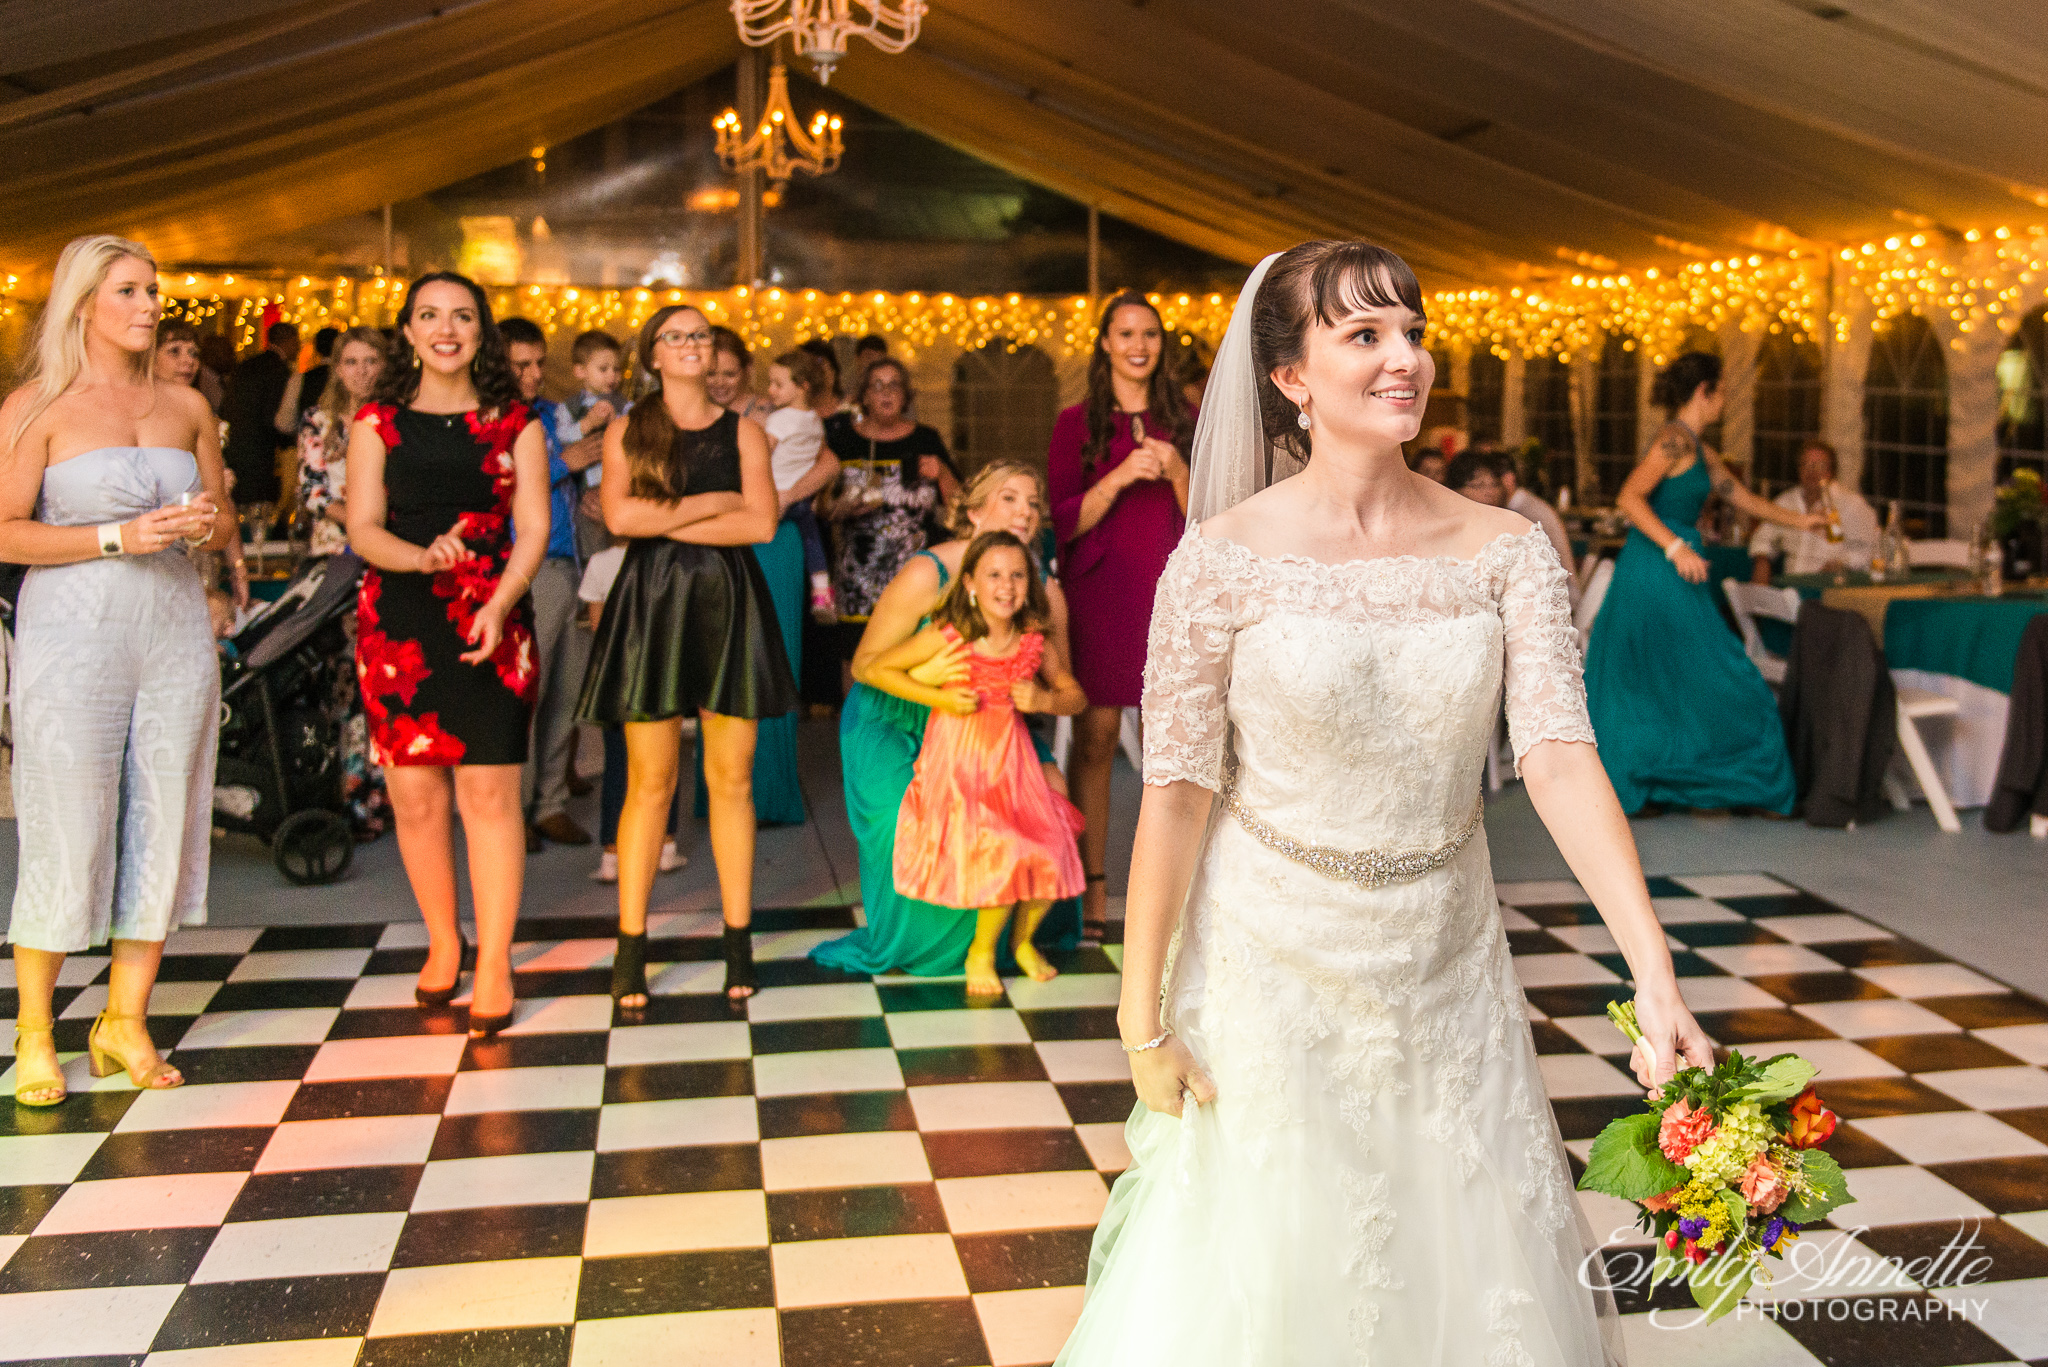 A bride throws her colorful fall bouquet to a group of single ladies during a country wedding reception at Amber Grove near Richmond, Virginia